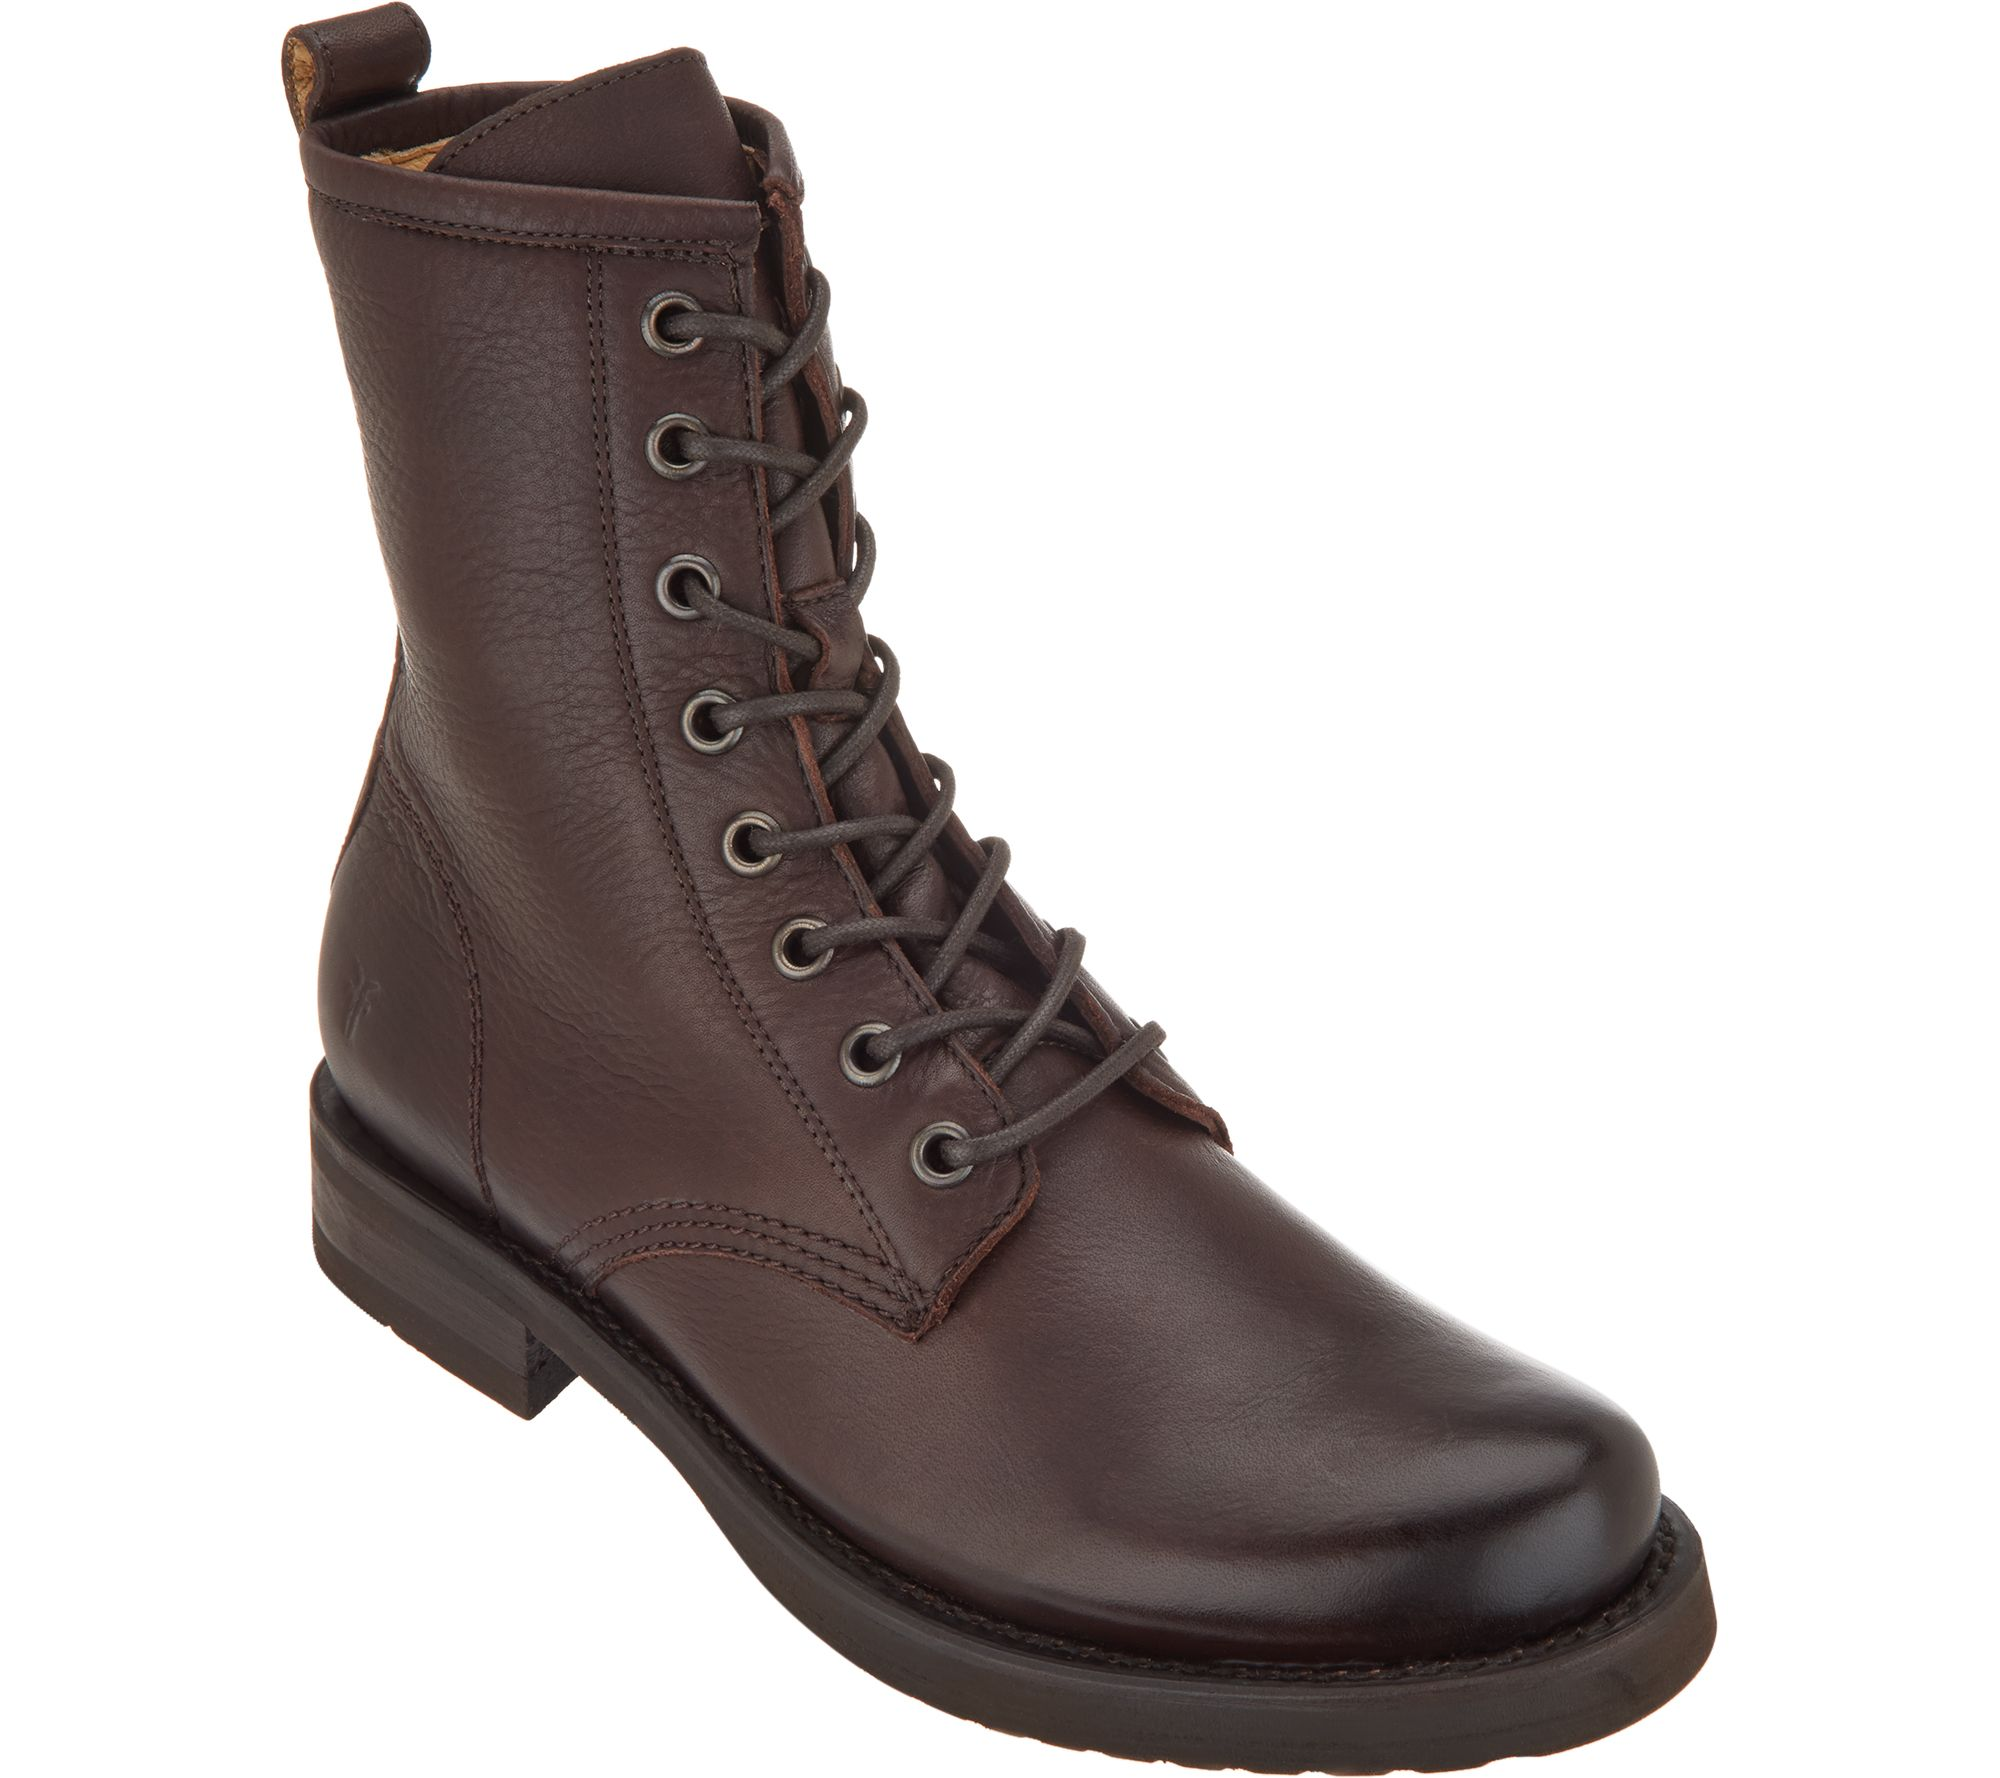 1fadde5e1da Frye Leather Lace-up Boots - Veronica Combat — QVC.com